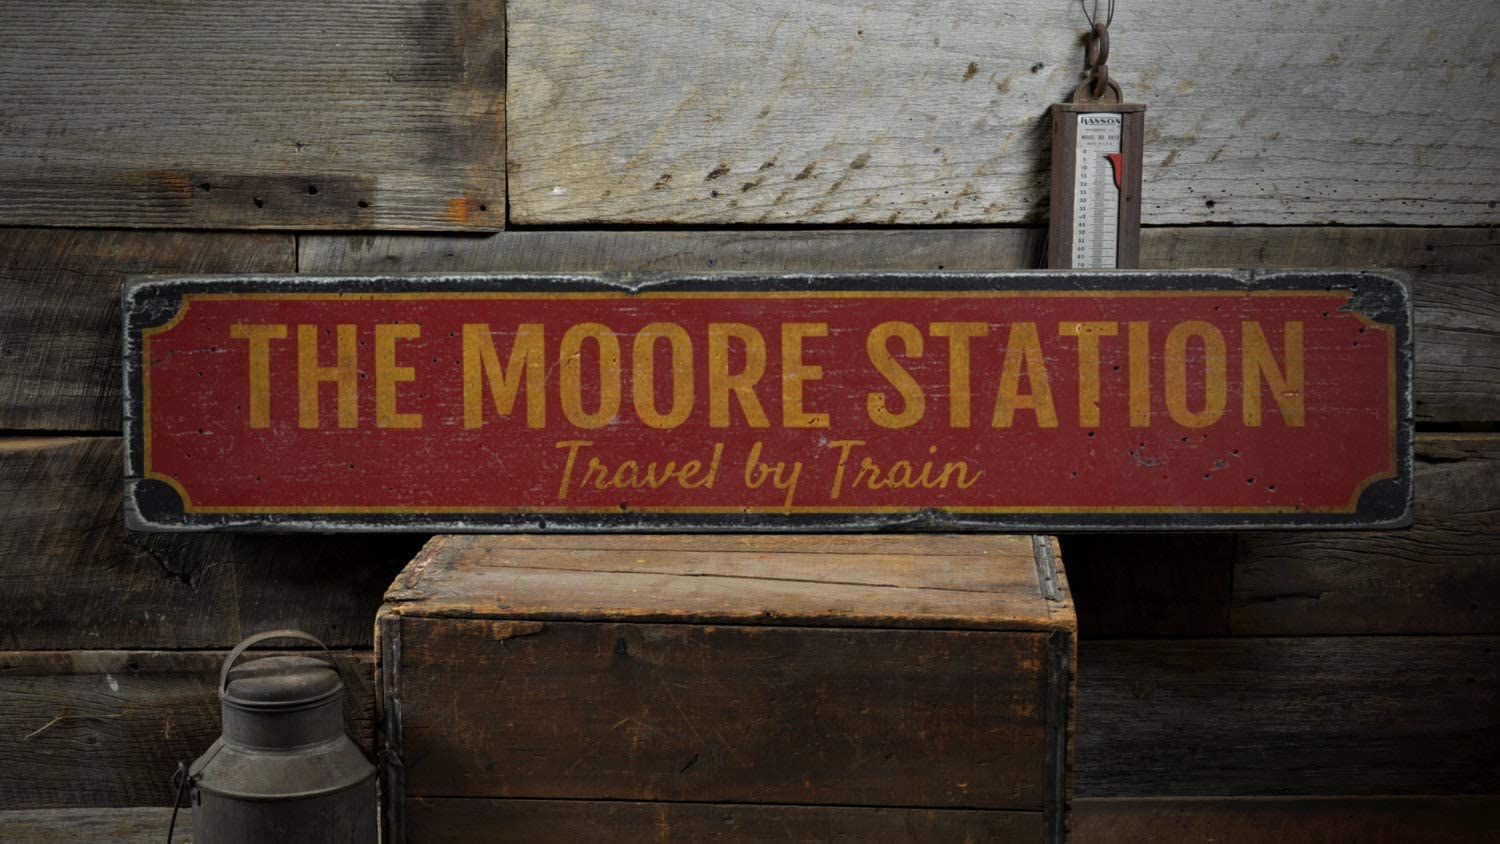 Family Train Station Wood Sign, Personalized Last Name Travel by Train Man Cave Home Decor - Rustic Hand Made Vintage Wooden Sign Home Decorations,Produced in The U.S.